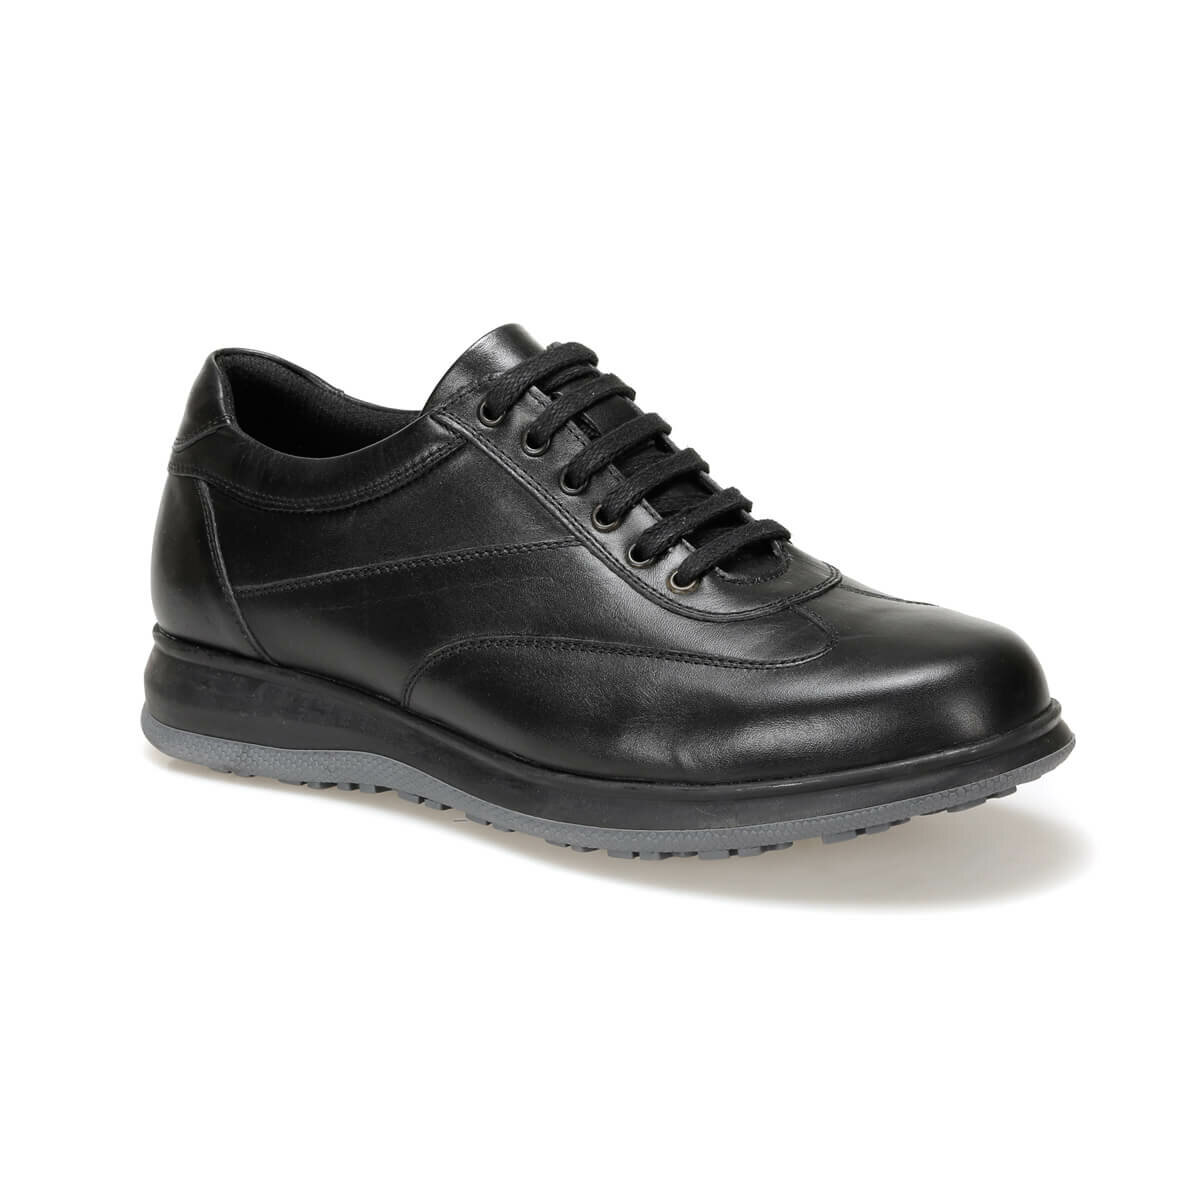 FLO COM-501 Black Male Shoes Flogart